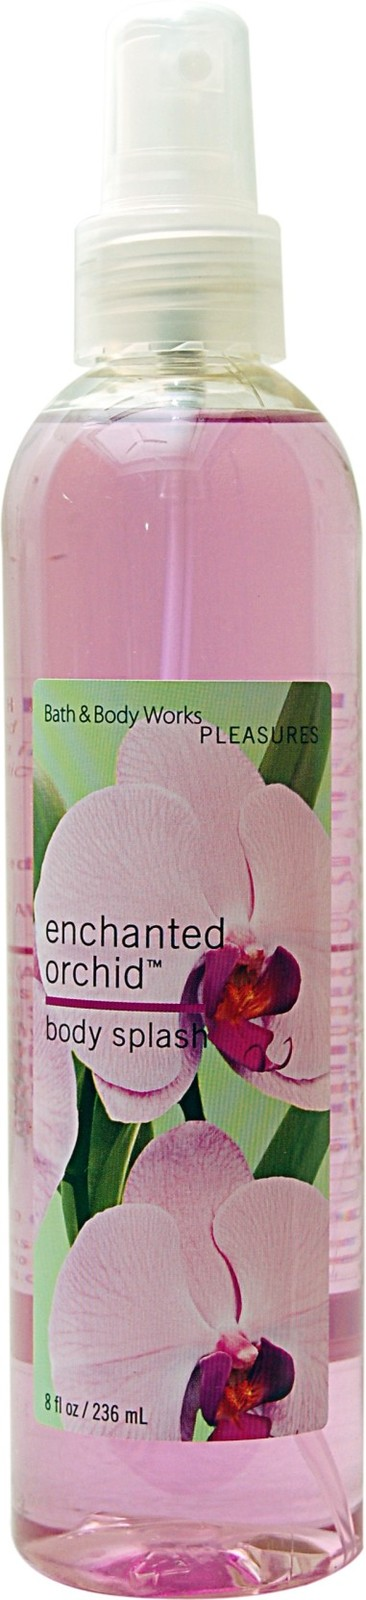 Primary image for Bath & Body Works Enchanted Orchid Body Splash Spray 8 fl oz (236 ml)